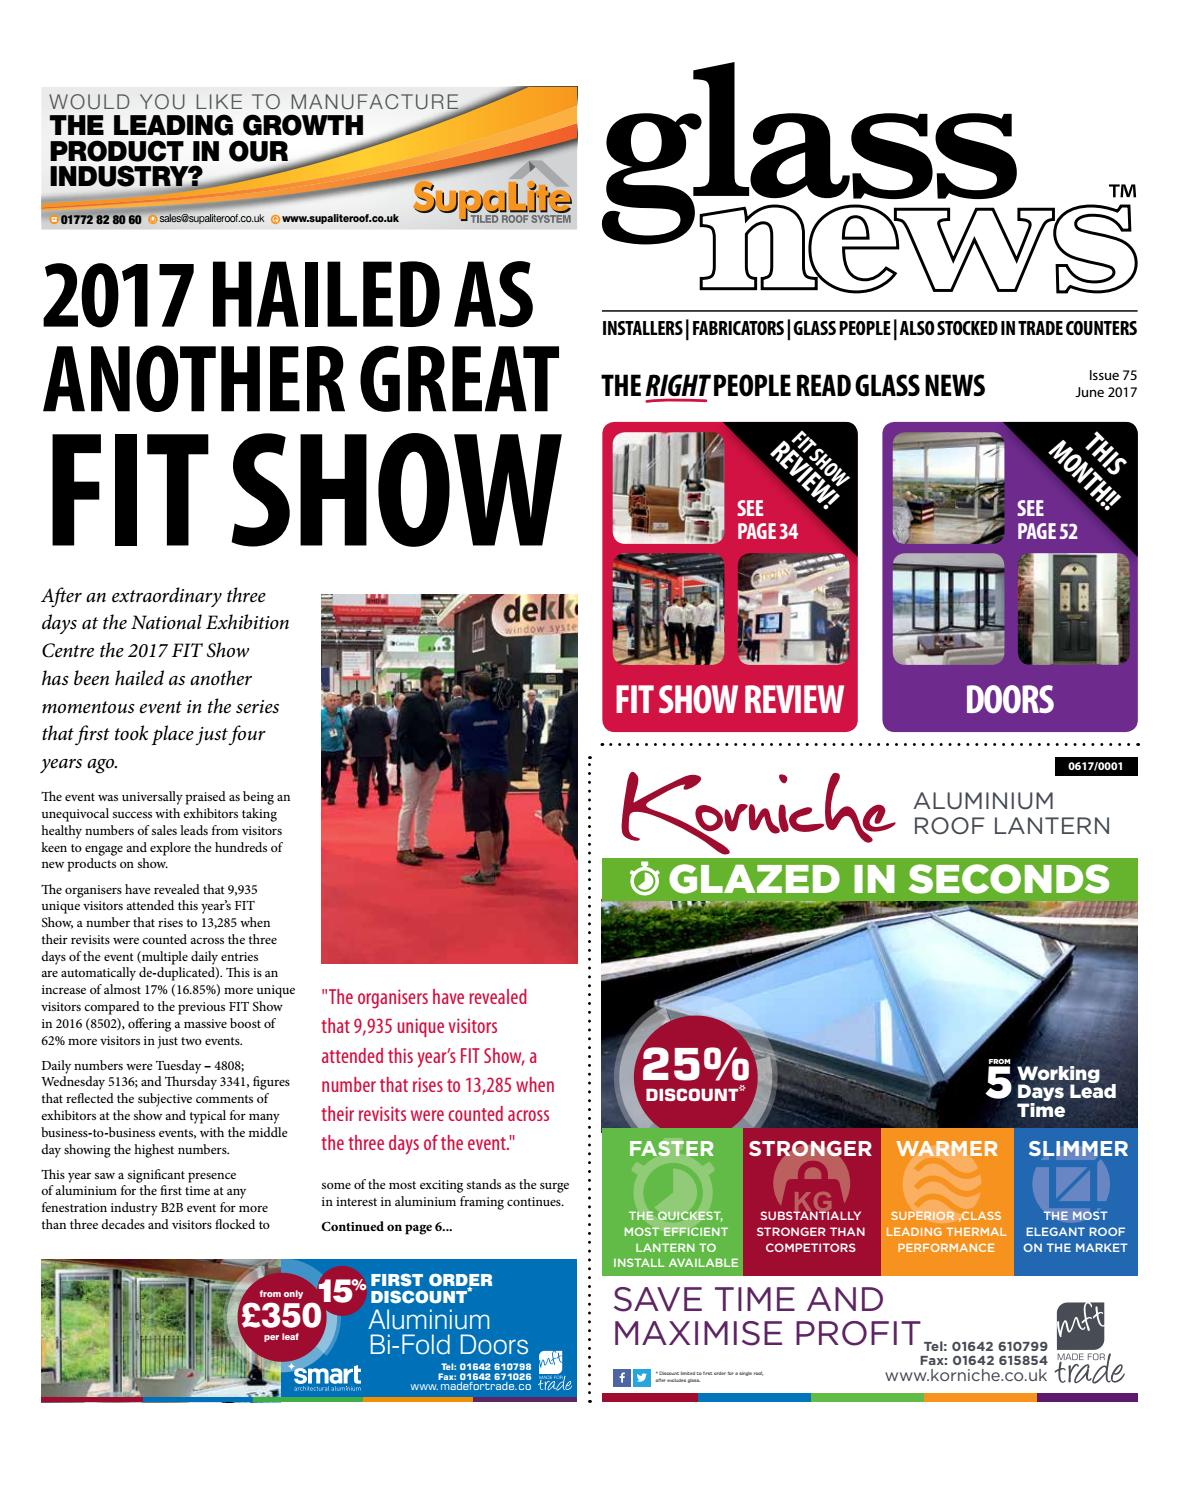 Glass news june 2017 by christina shaw issuu fandeluxe Image collections